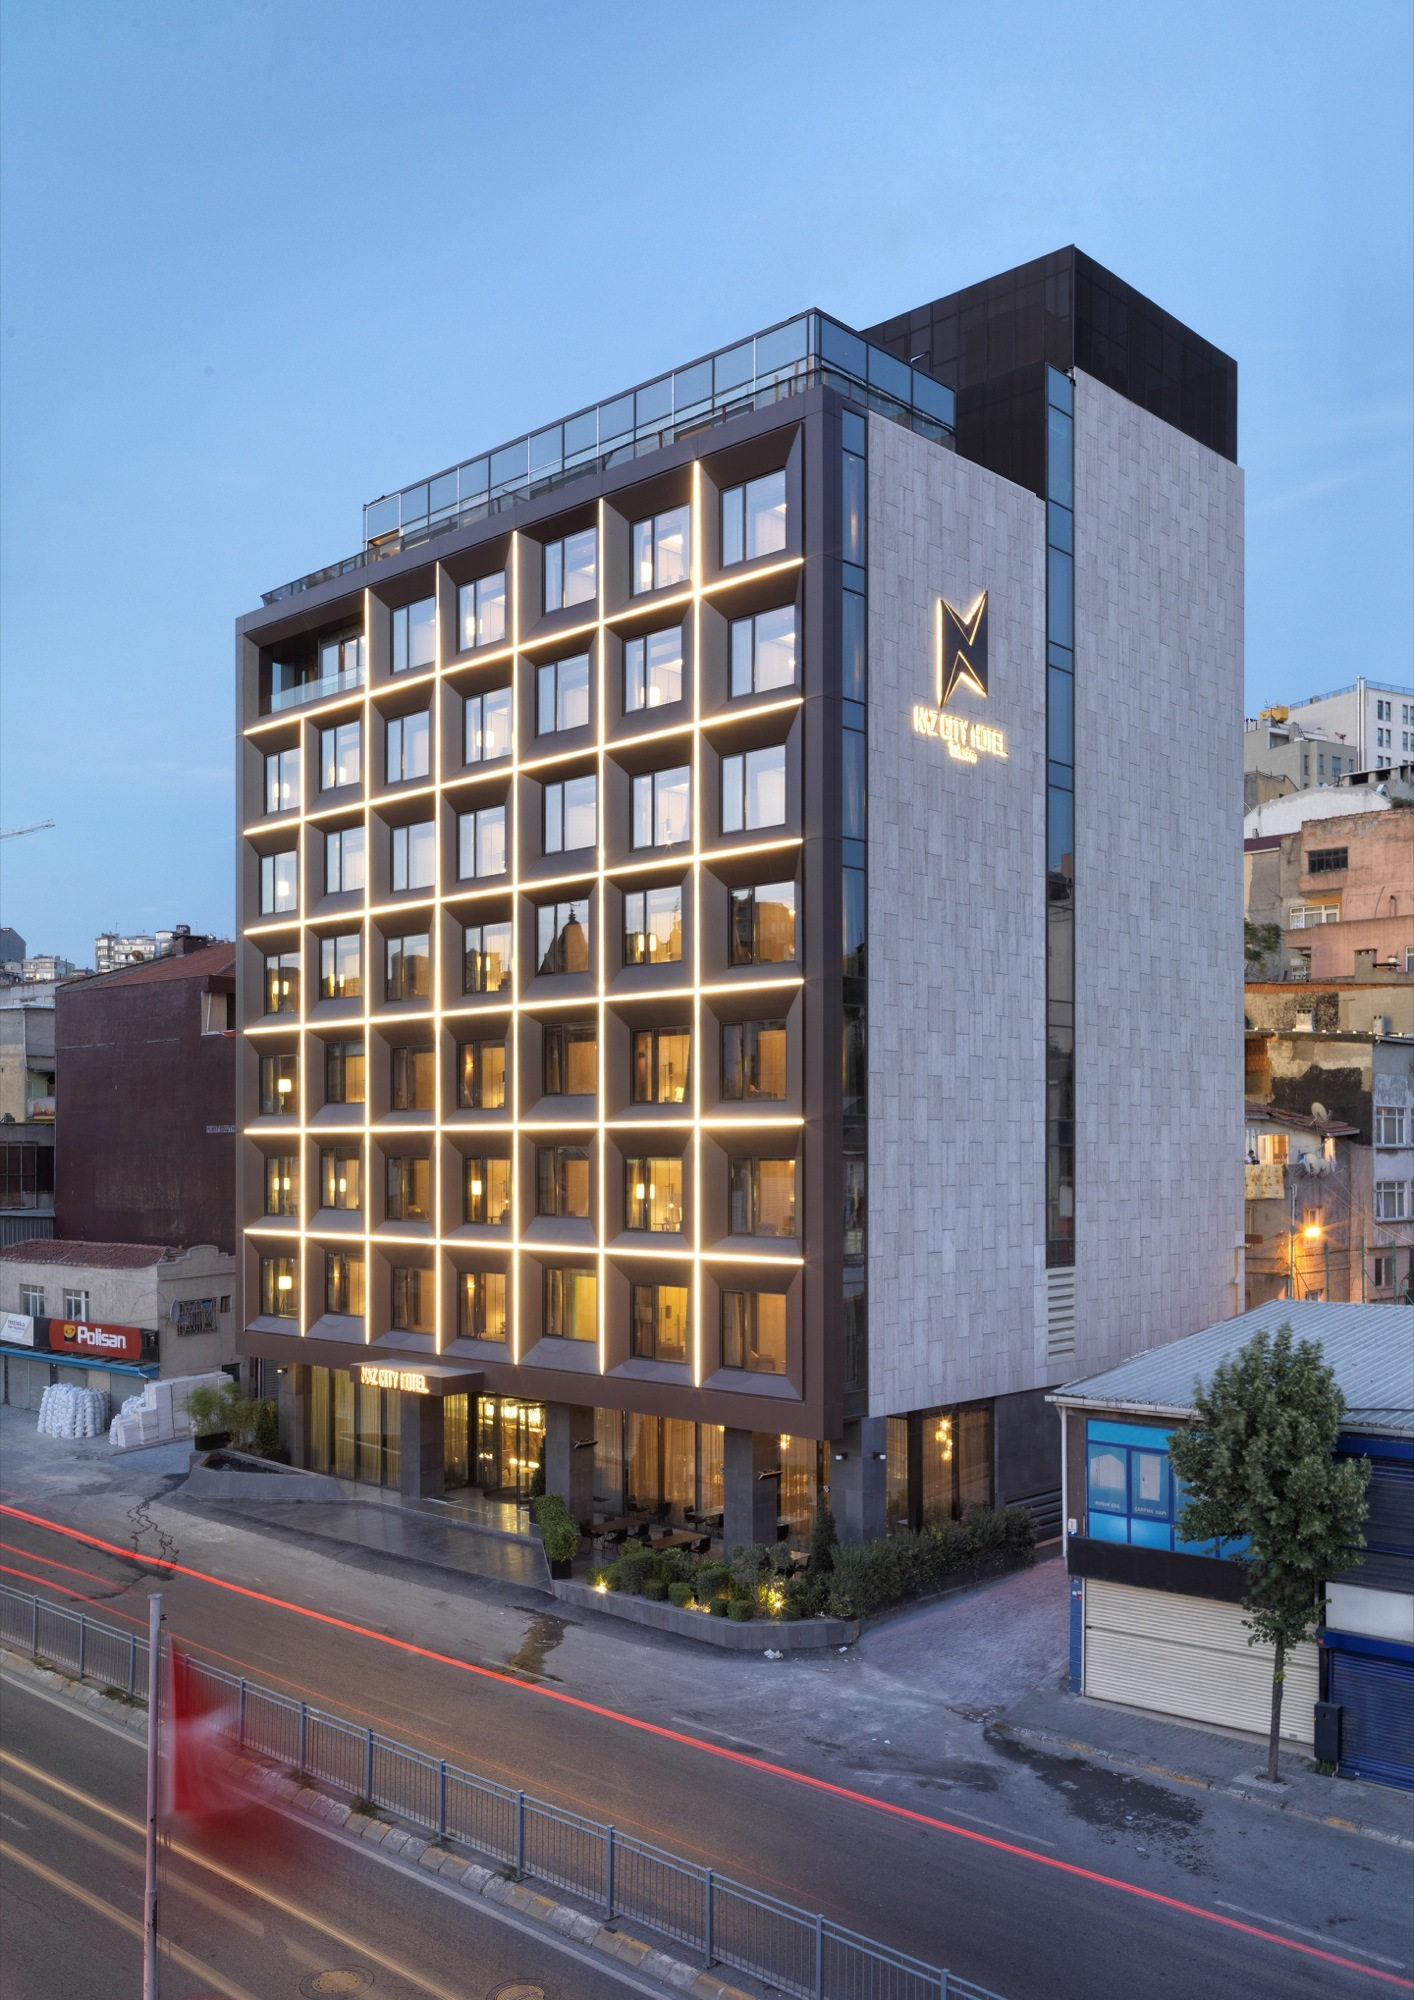 Naz city hotel taksim metex design group archdaily for 4 design hotel artemis